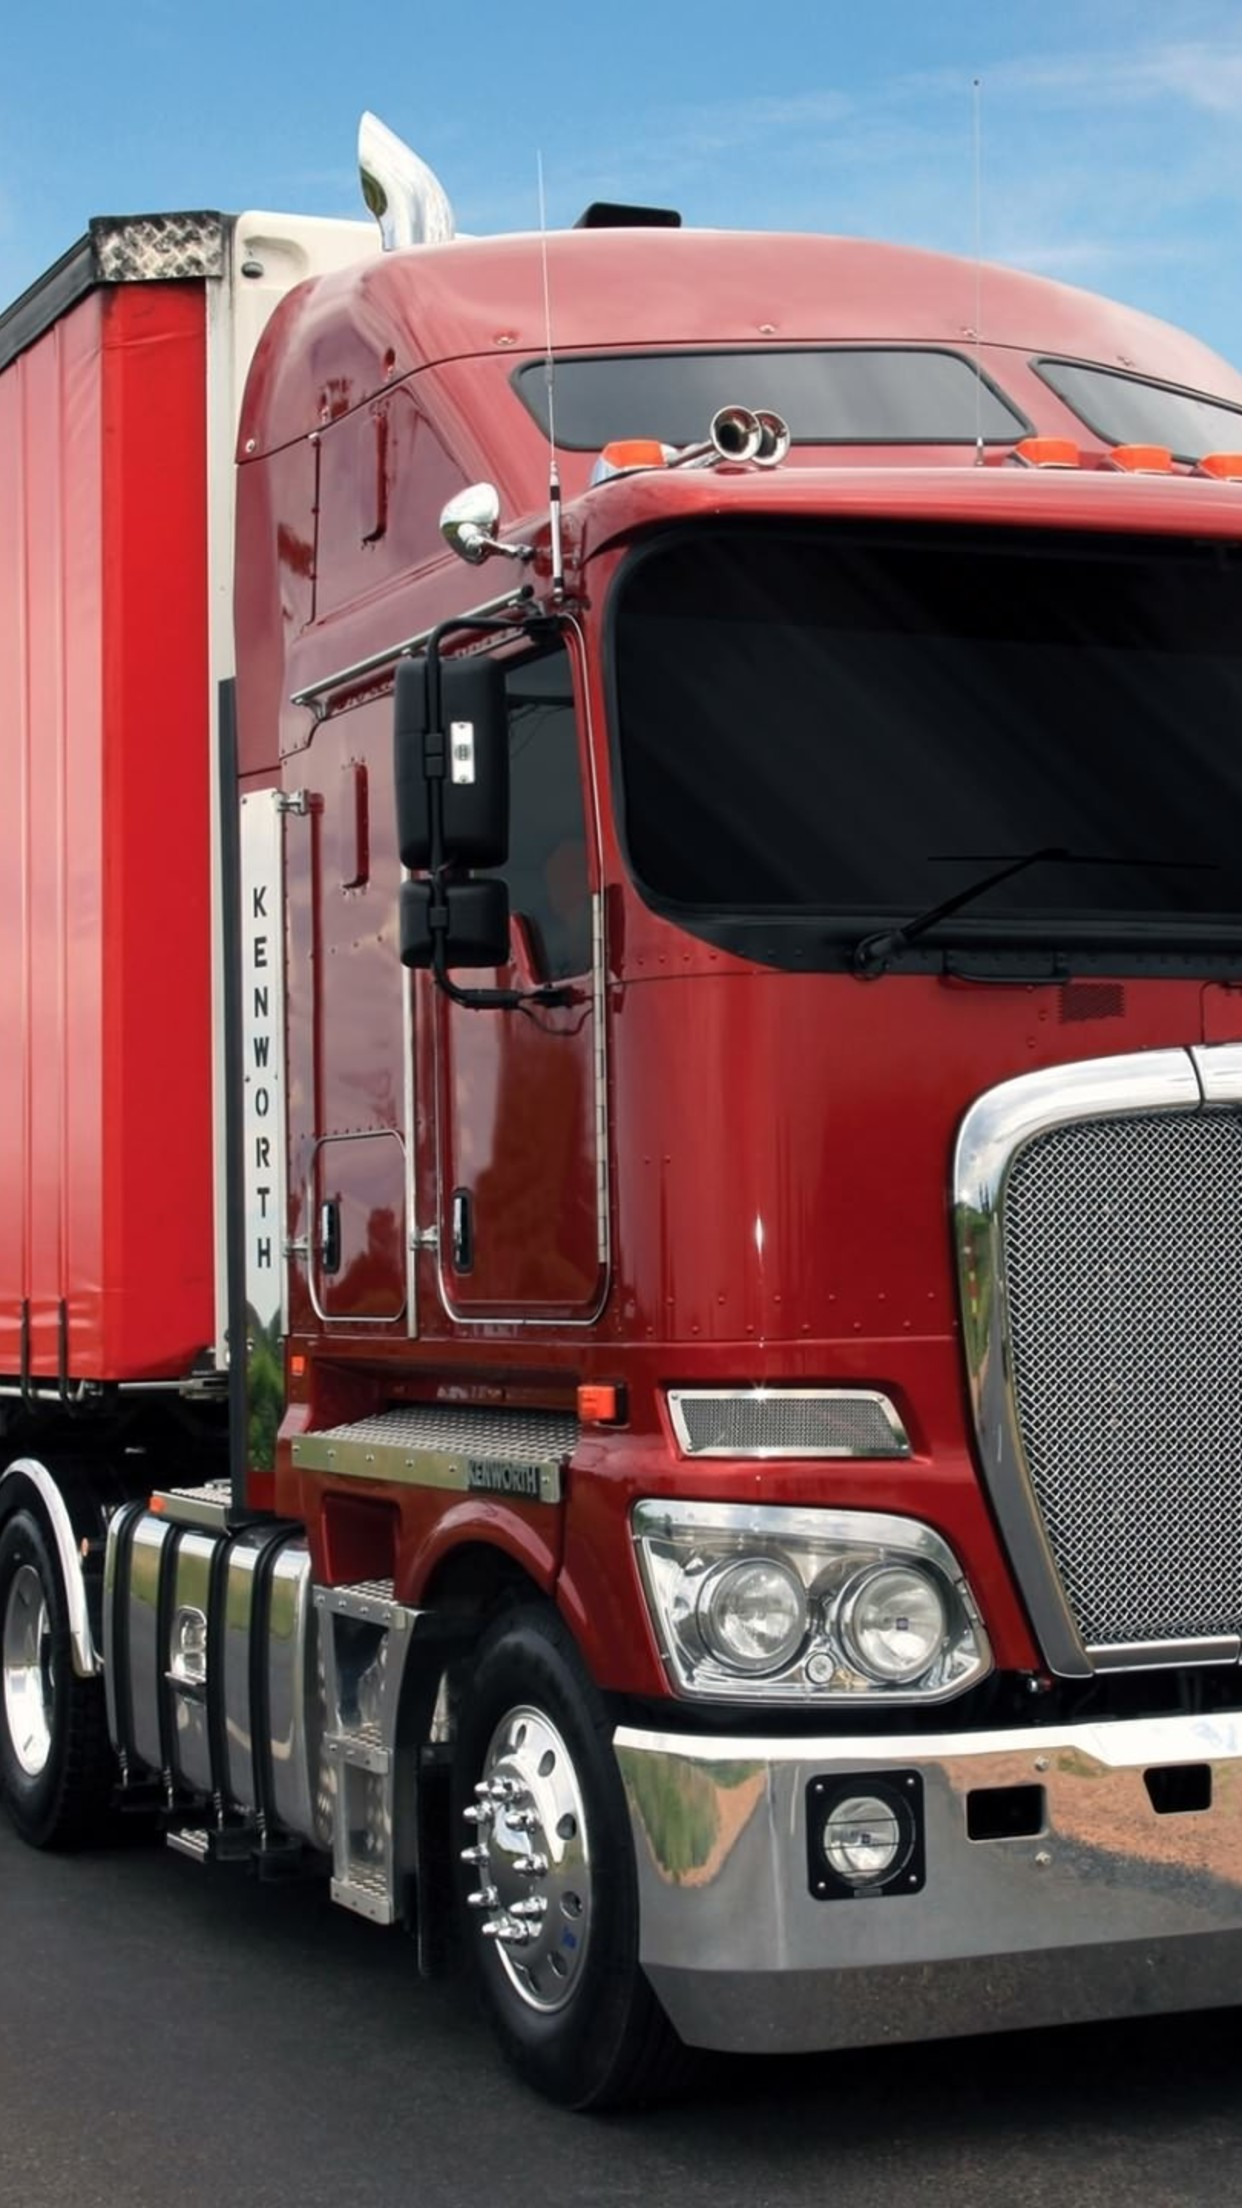 truck red 3Wallpapers iPhone Parallax Truck Red